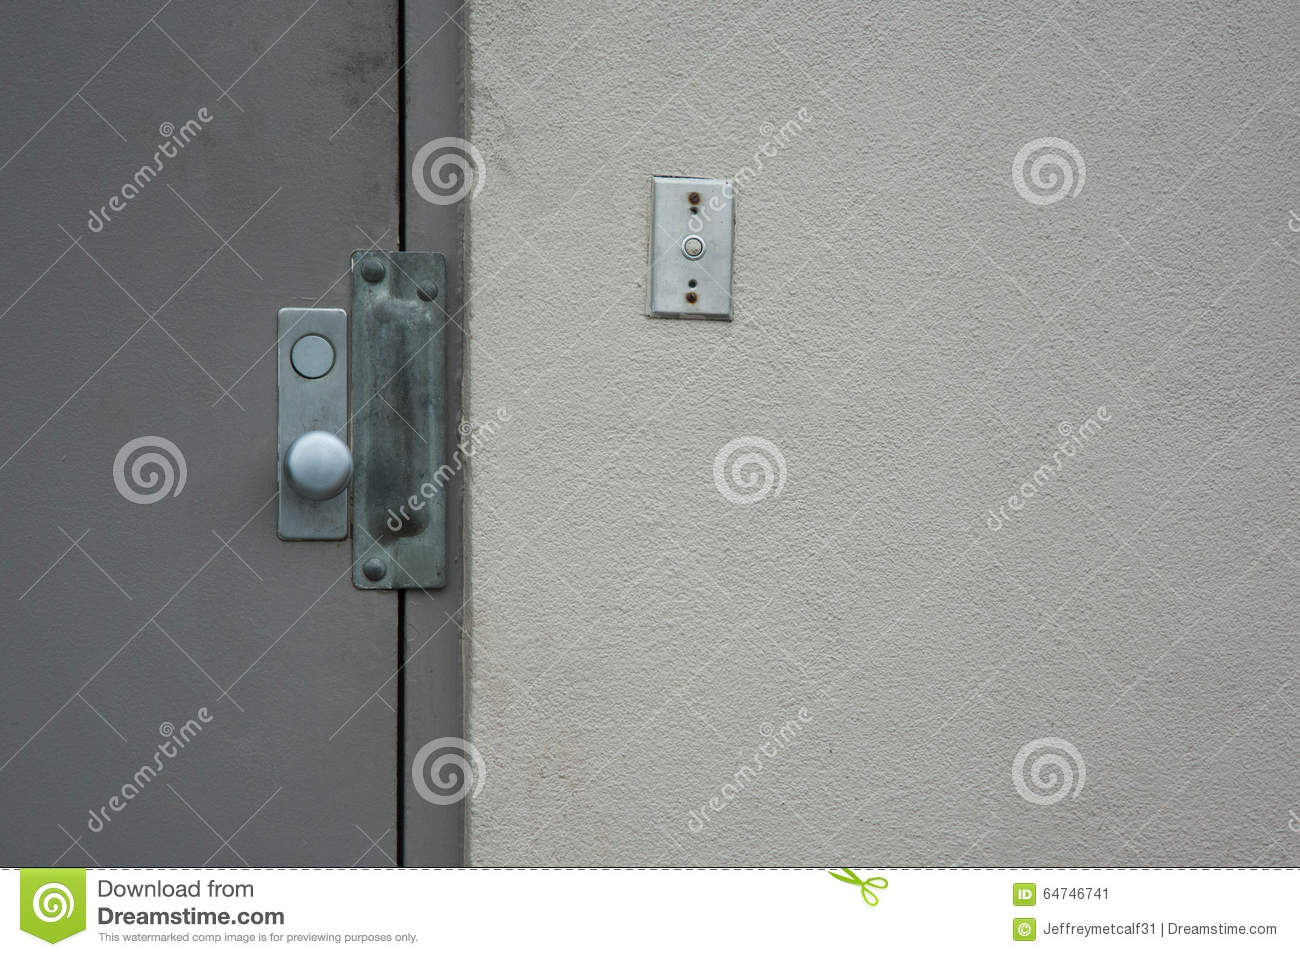 Commercial Security Doors commercial security door stock photo - image: 64746741